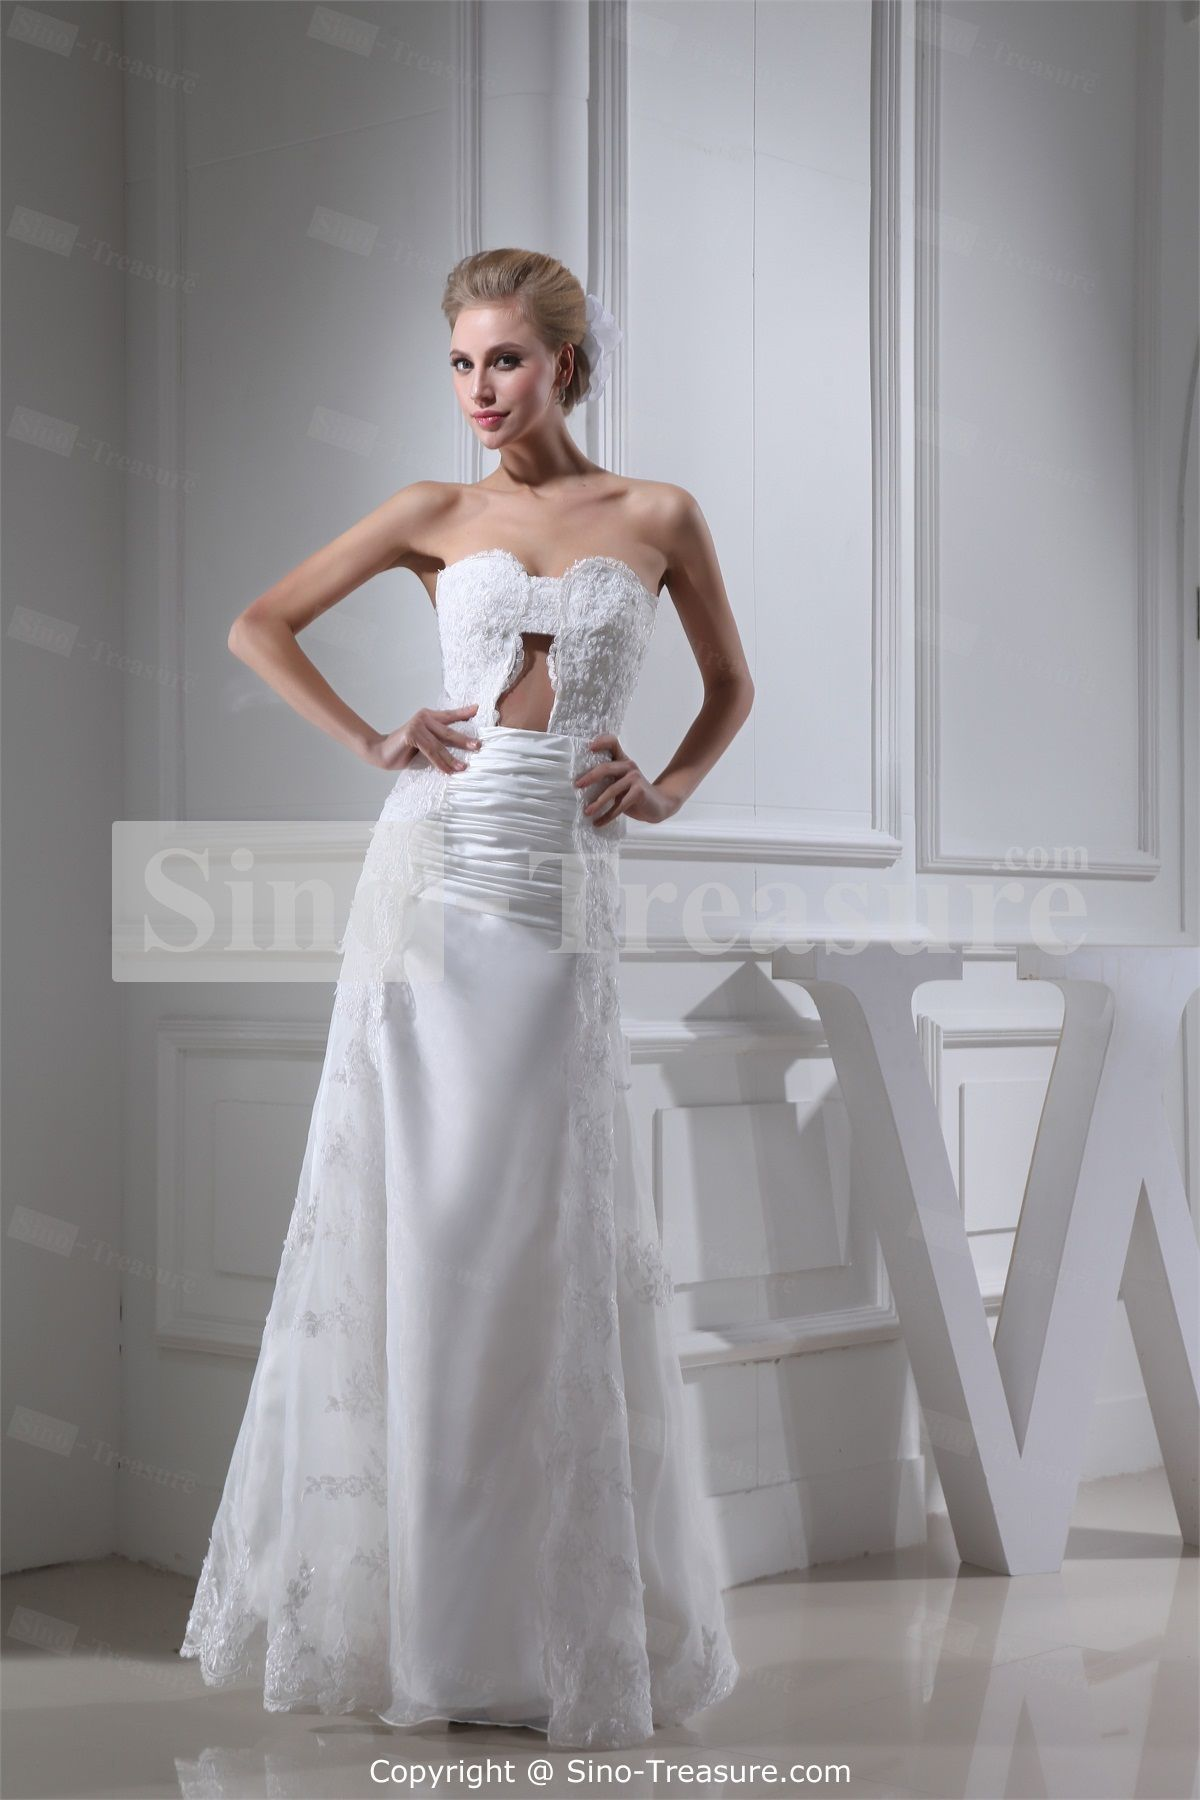 Affordable Wedding Dresses Chicago - Dresses for Guest at Wedding ...